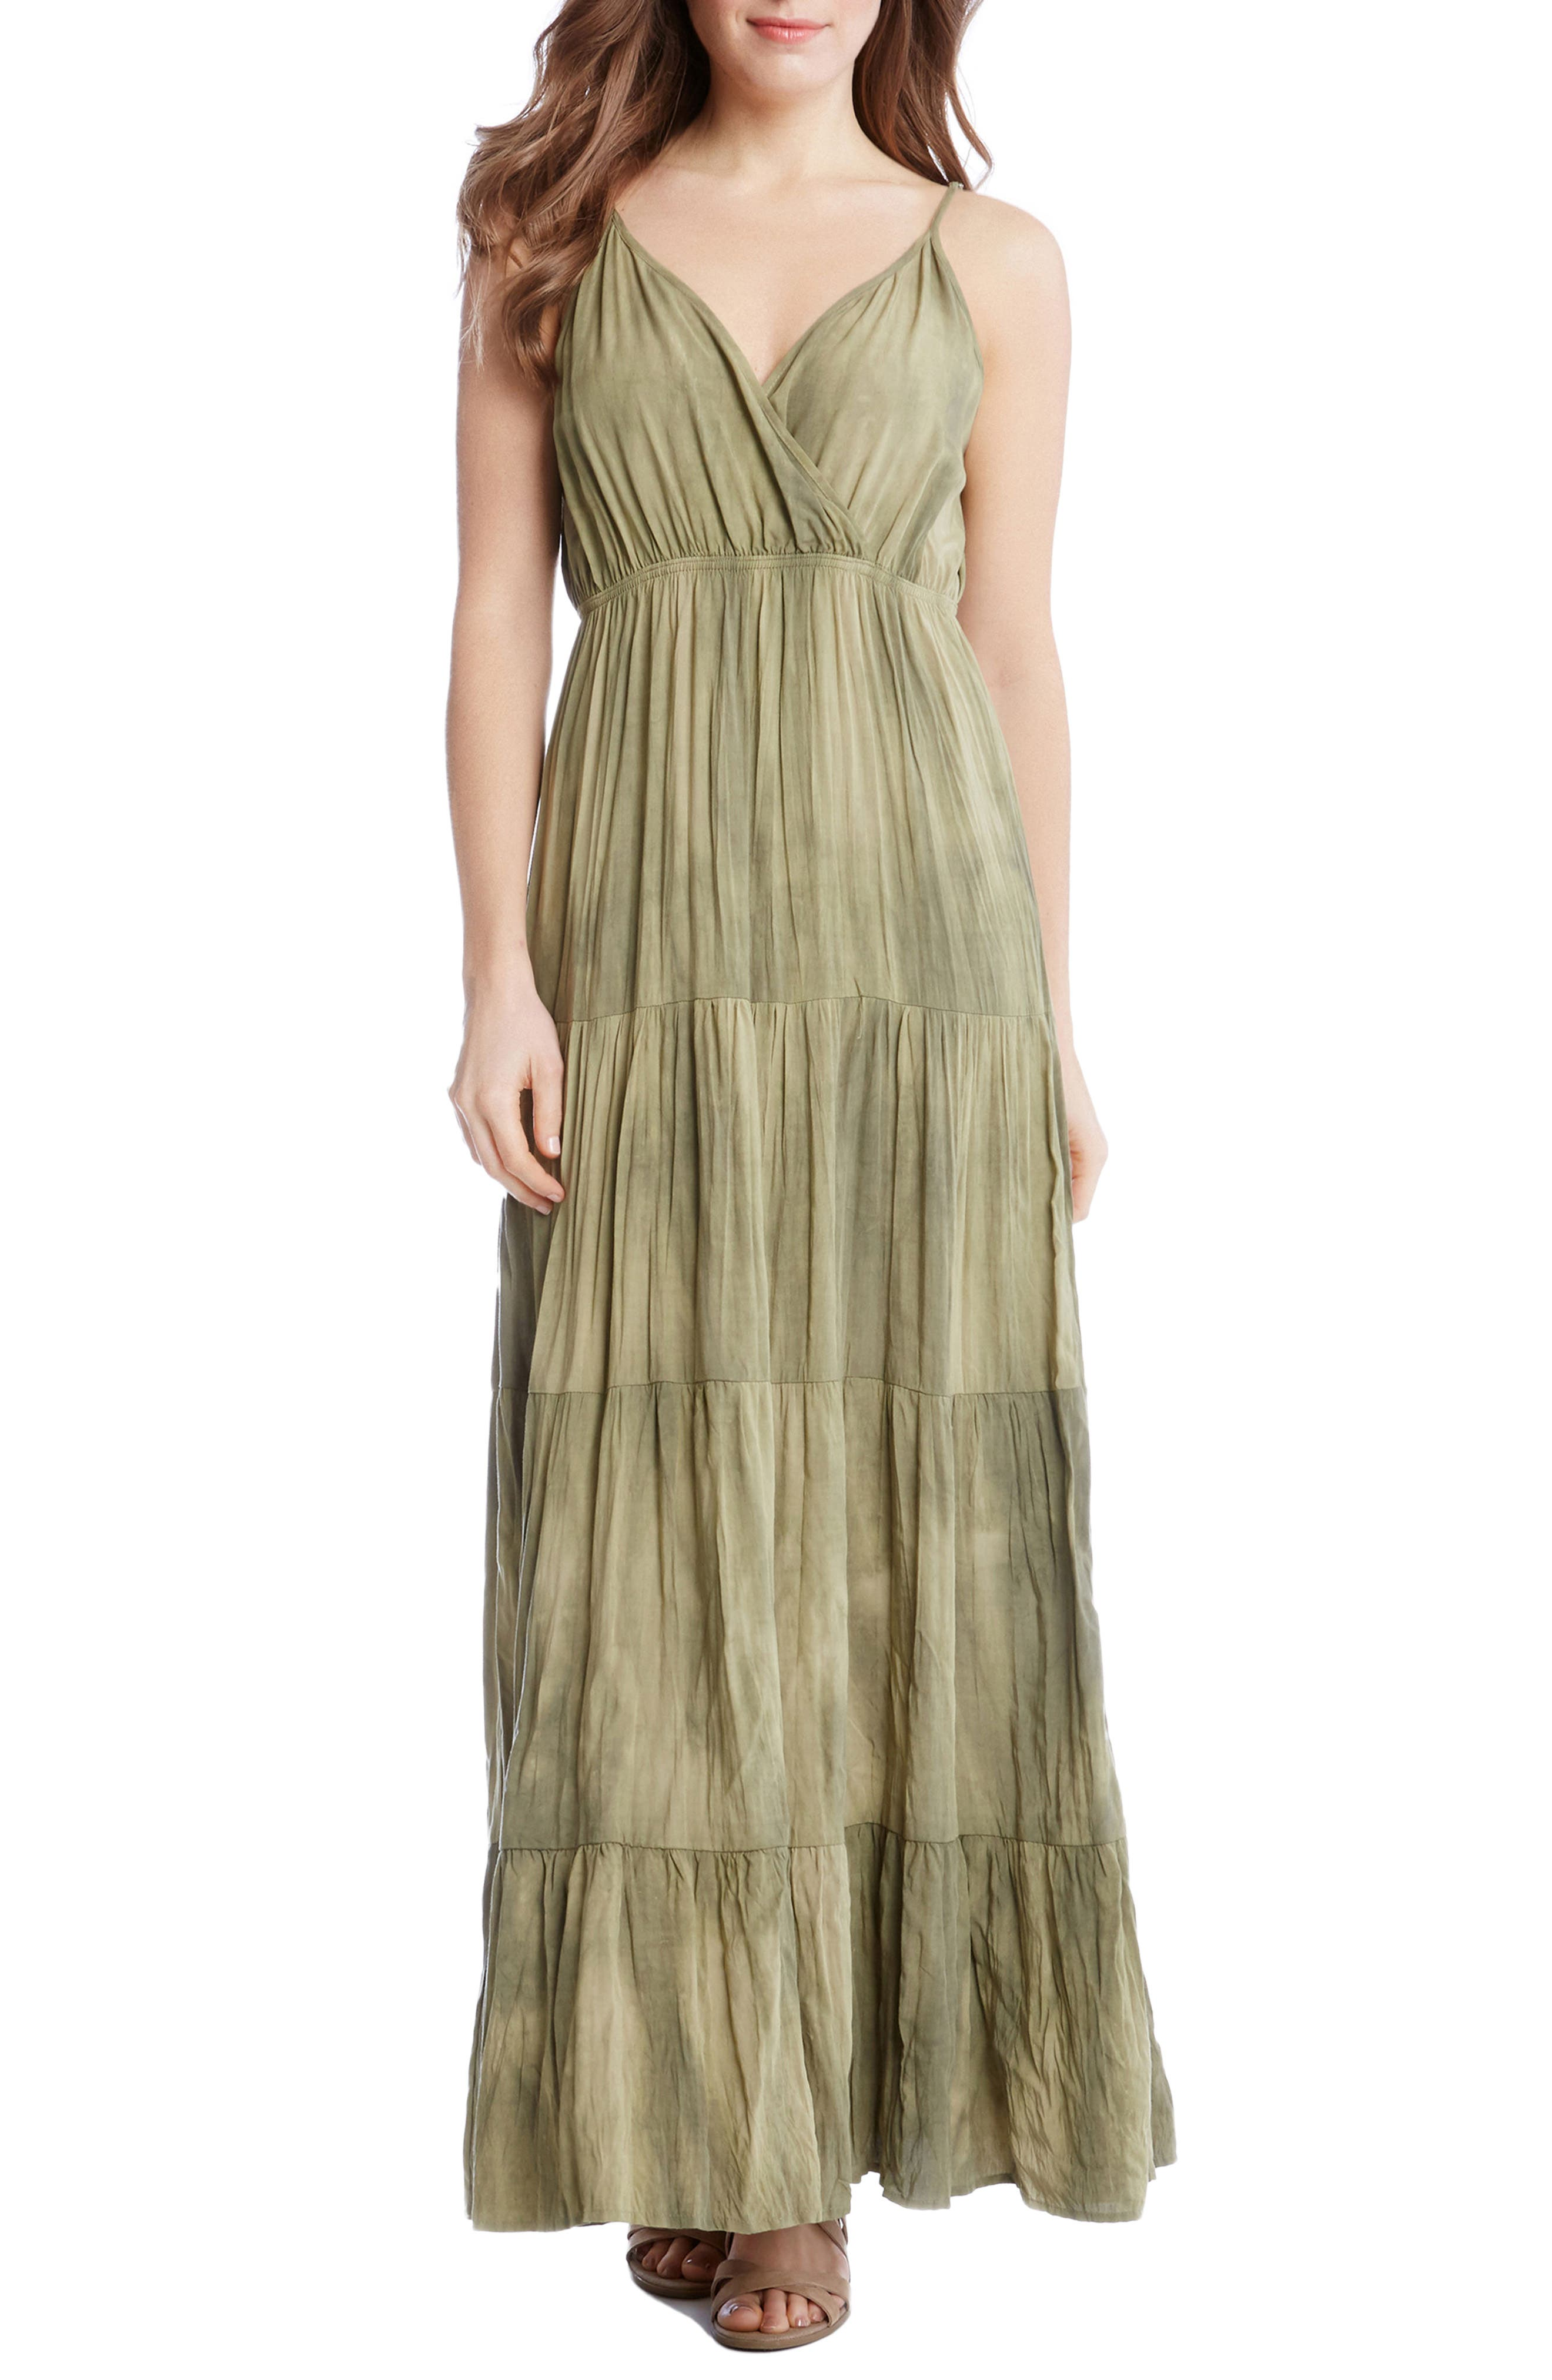 Tiered Maxi Dress,                             Main thumbnail 1, color,                             Tie Dye